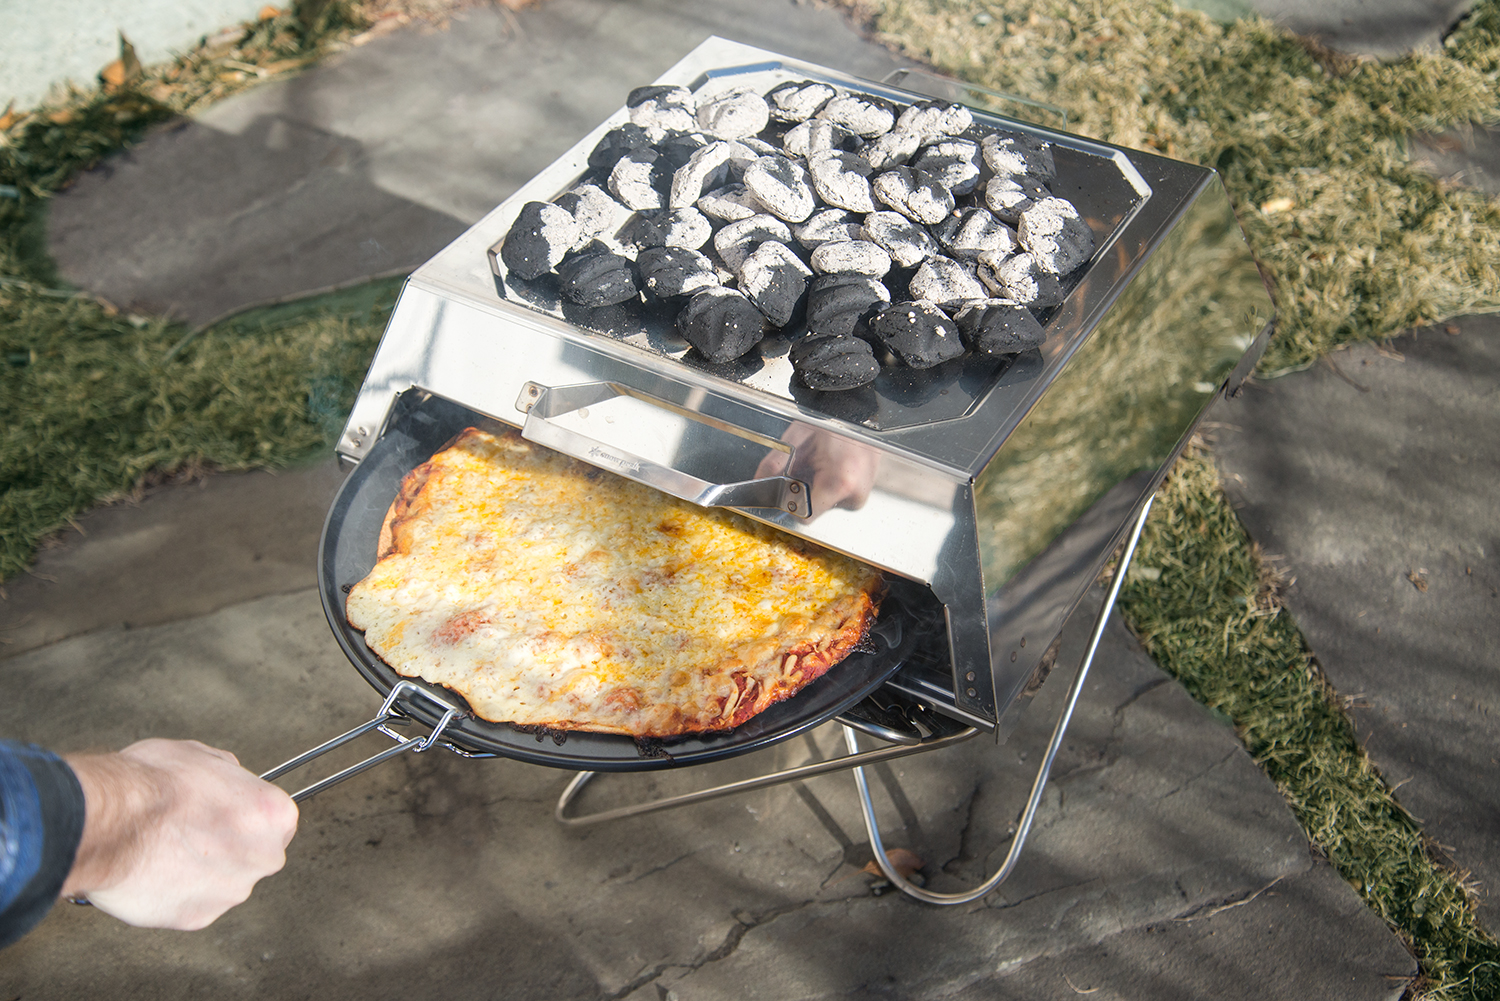 pizza oven snowpeak - First Look: Stove Cooks Pizza With Your Campfire